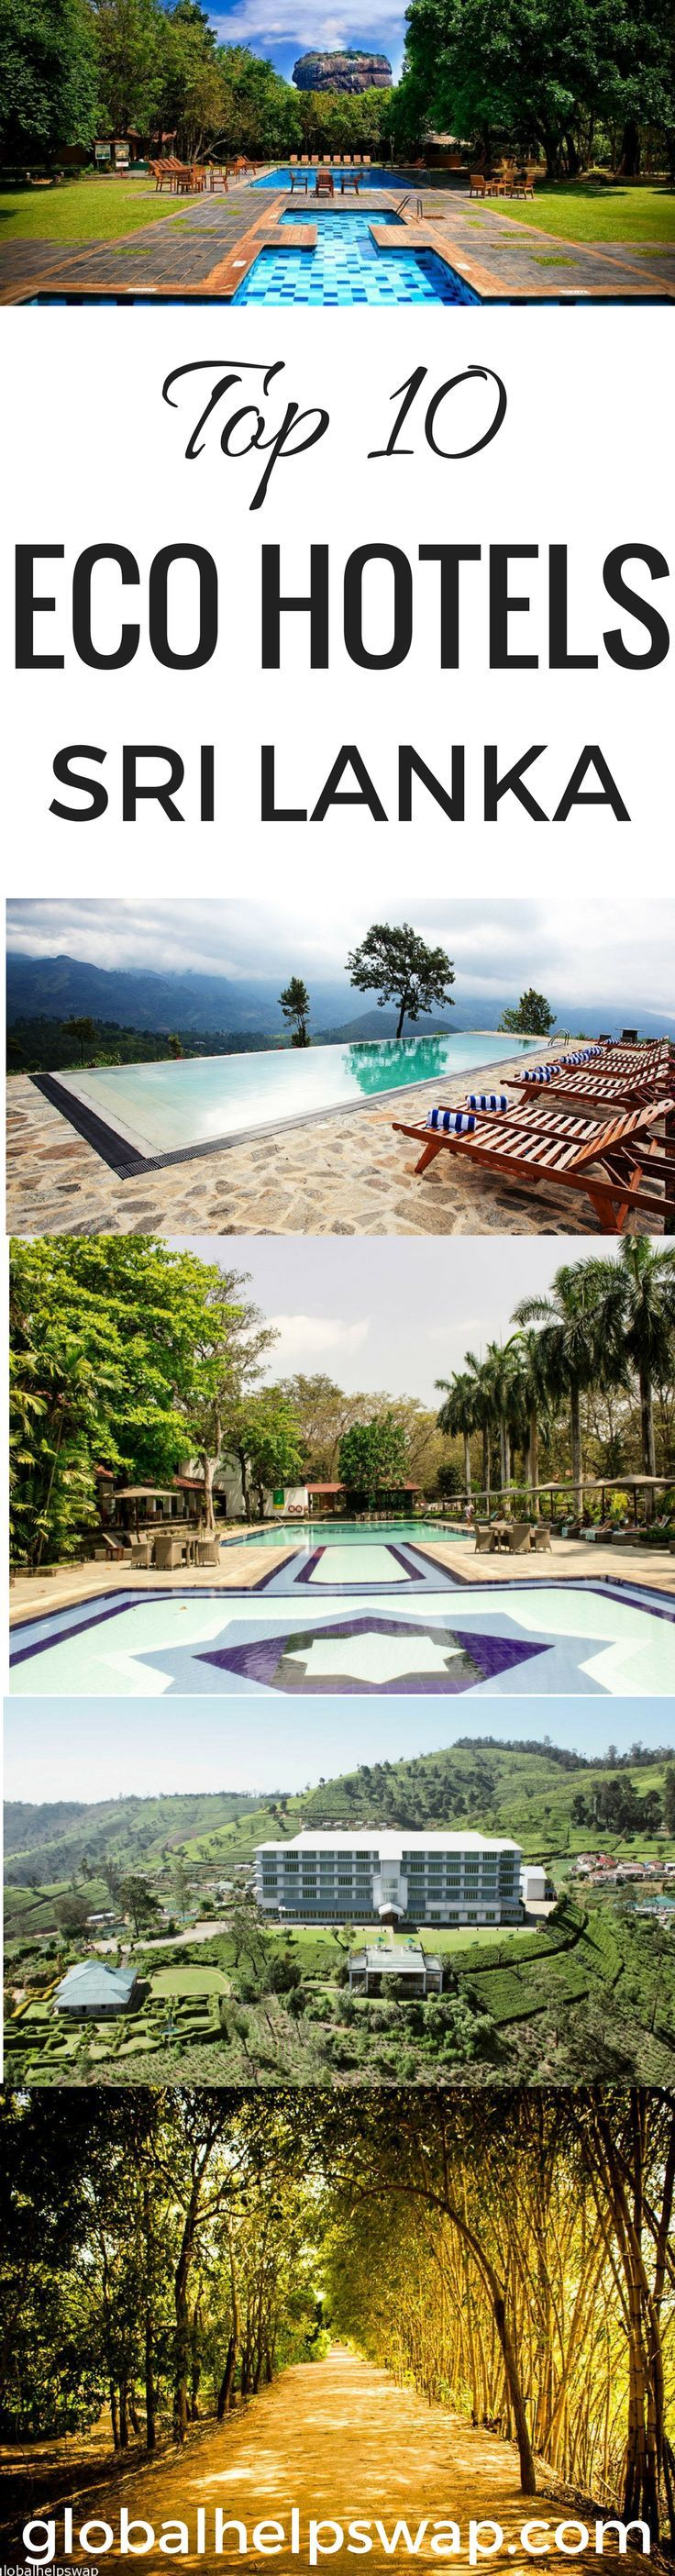 Sri Lanka has some of the most amazing Eco Hotels in the world. They combine beautiful design with breathtaking nature. Some hotels offer amazing villas, others are close to beautiful beaches, some have greats spas. Whether its a honeymoon trip or a special vacation these beautiful hotels and resorts will add magic to your trip.